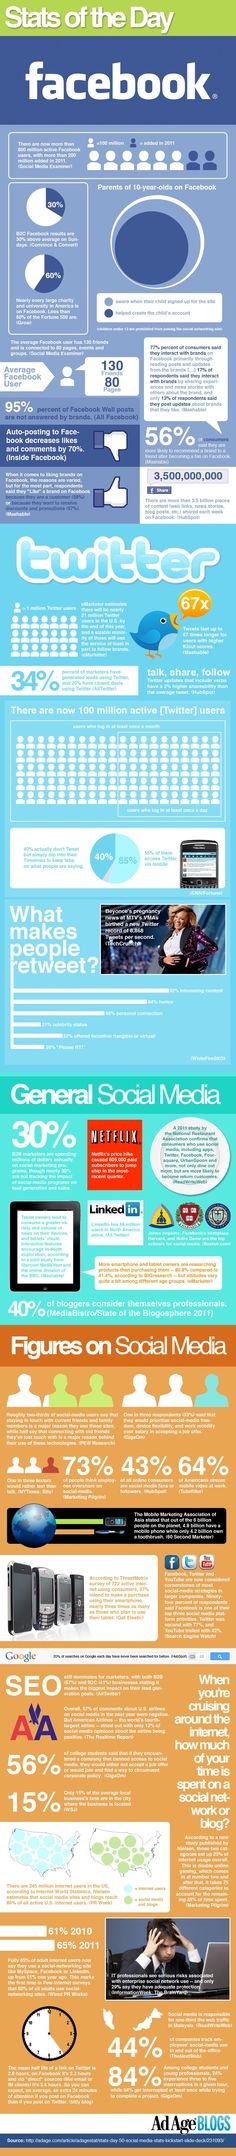 Stats of the day - 2012